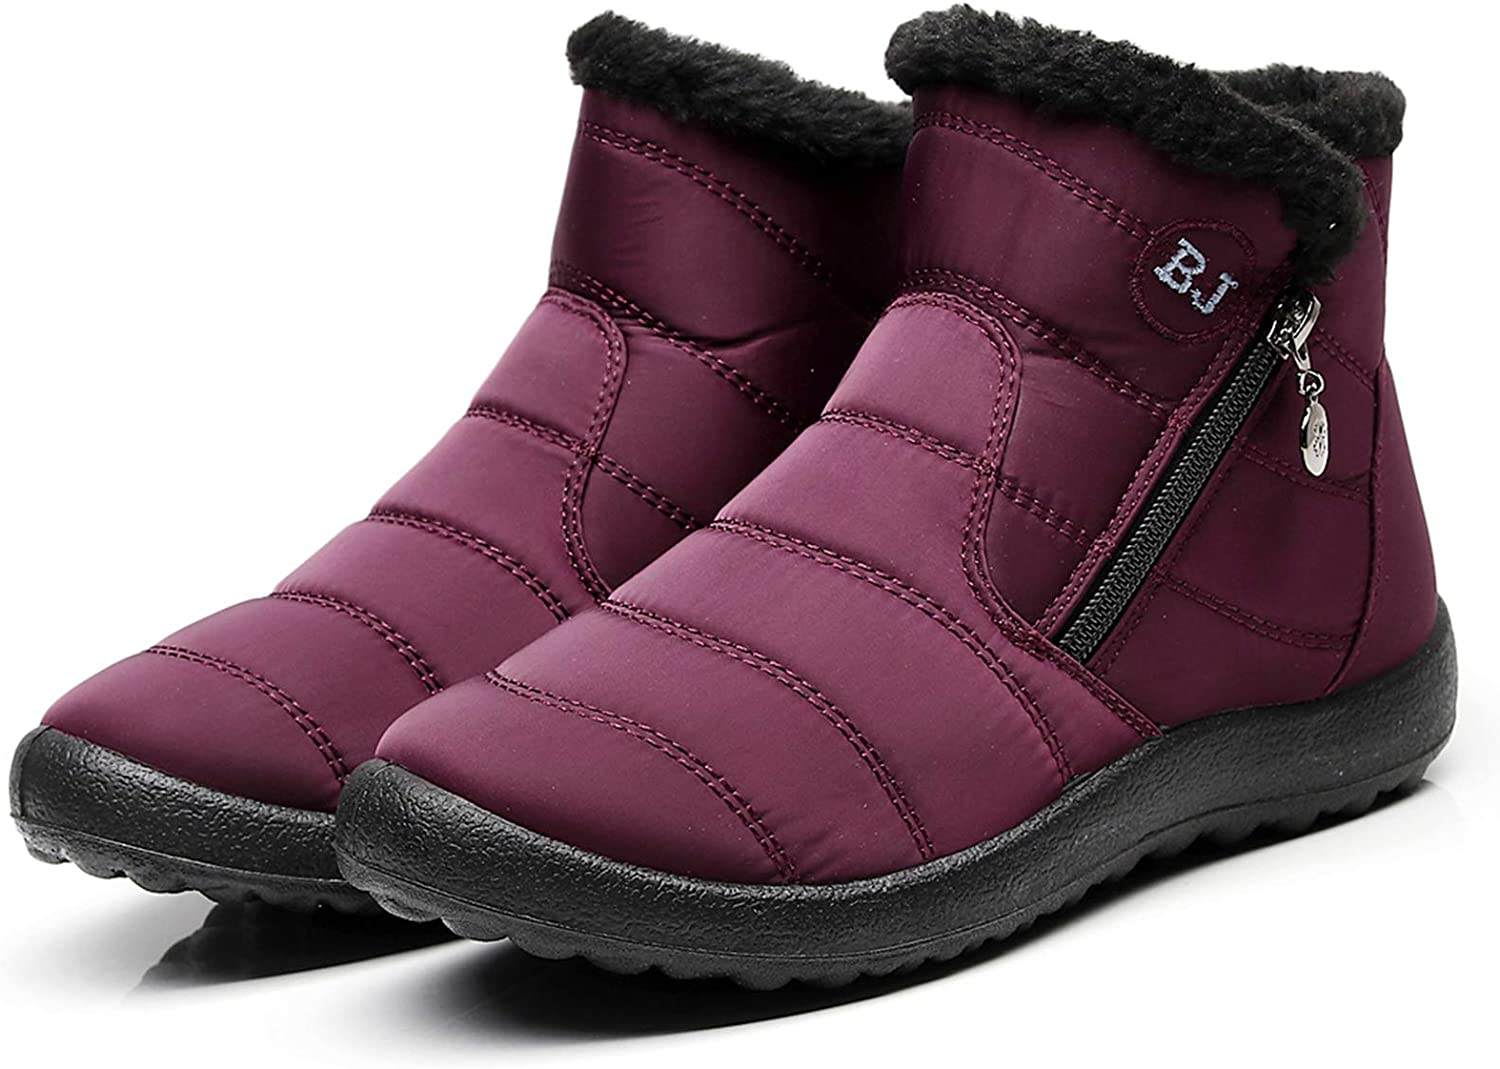 LAVAU Womens Winter Snow Boots Fur Lined Warm Ankle Boots Slip On Waterproof Outdoor Booties Comfortable Shoes for Women